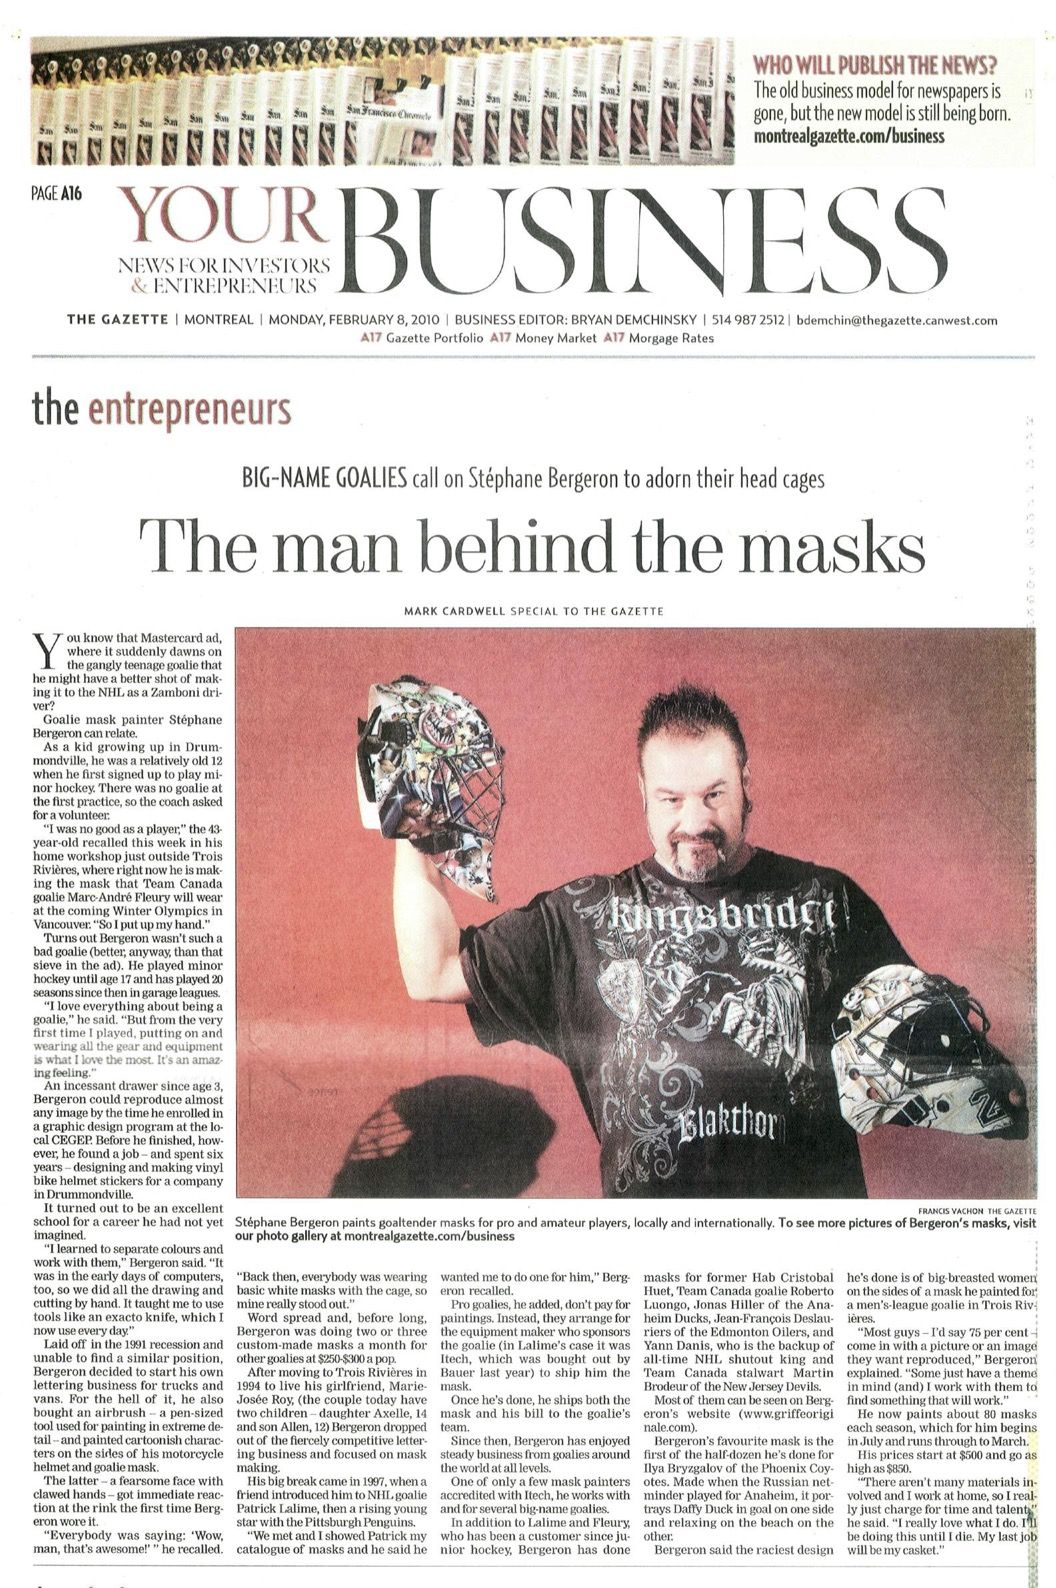 the_man_behind_the_masks